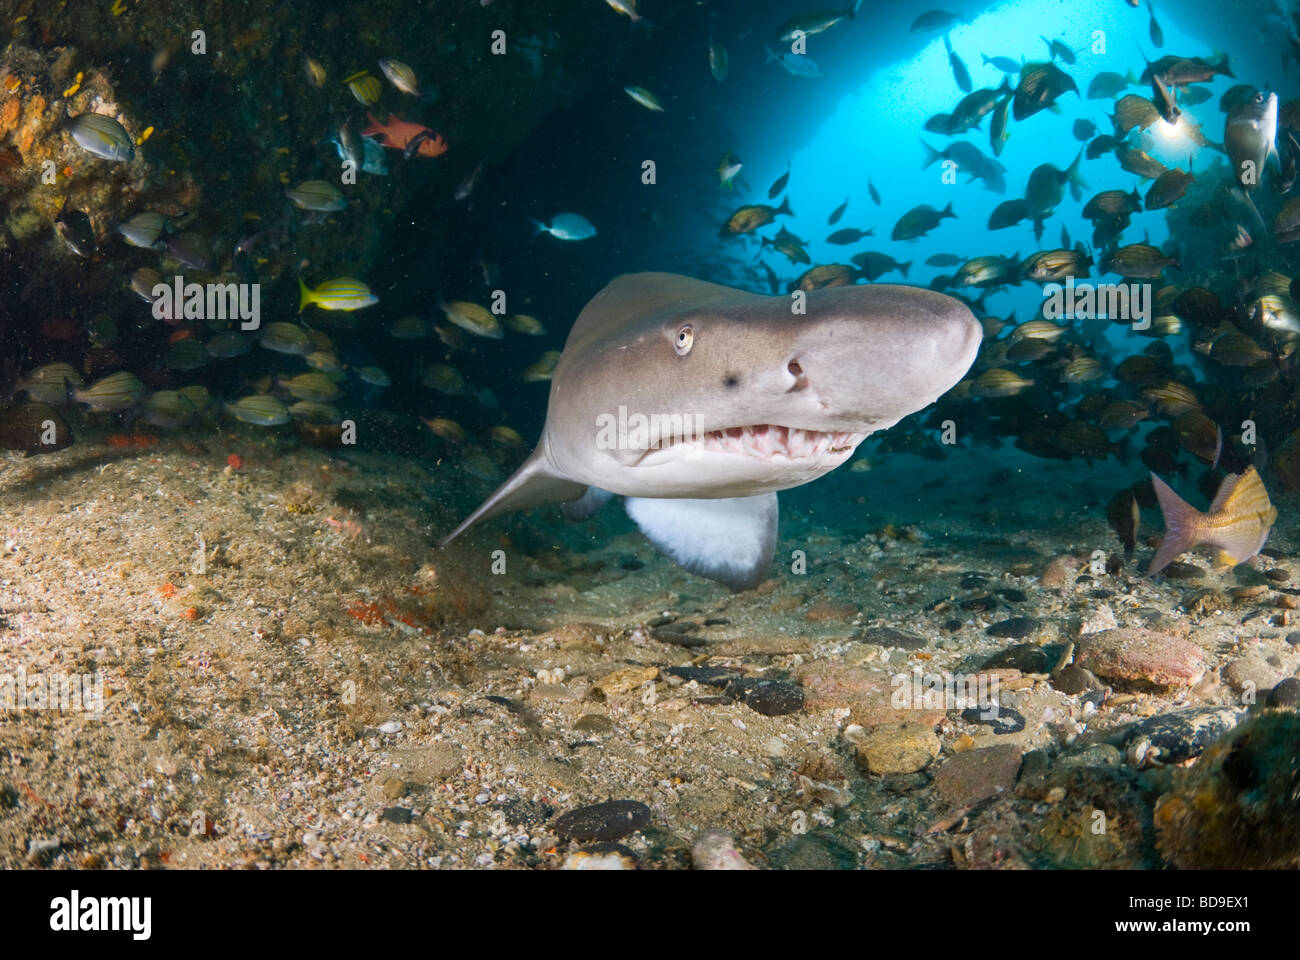 Ragged tooth shark or Sand tiger (Carcharias taurus), Aliwal Shoal, South Africa Stock Photo